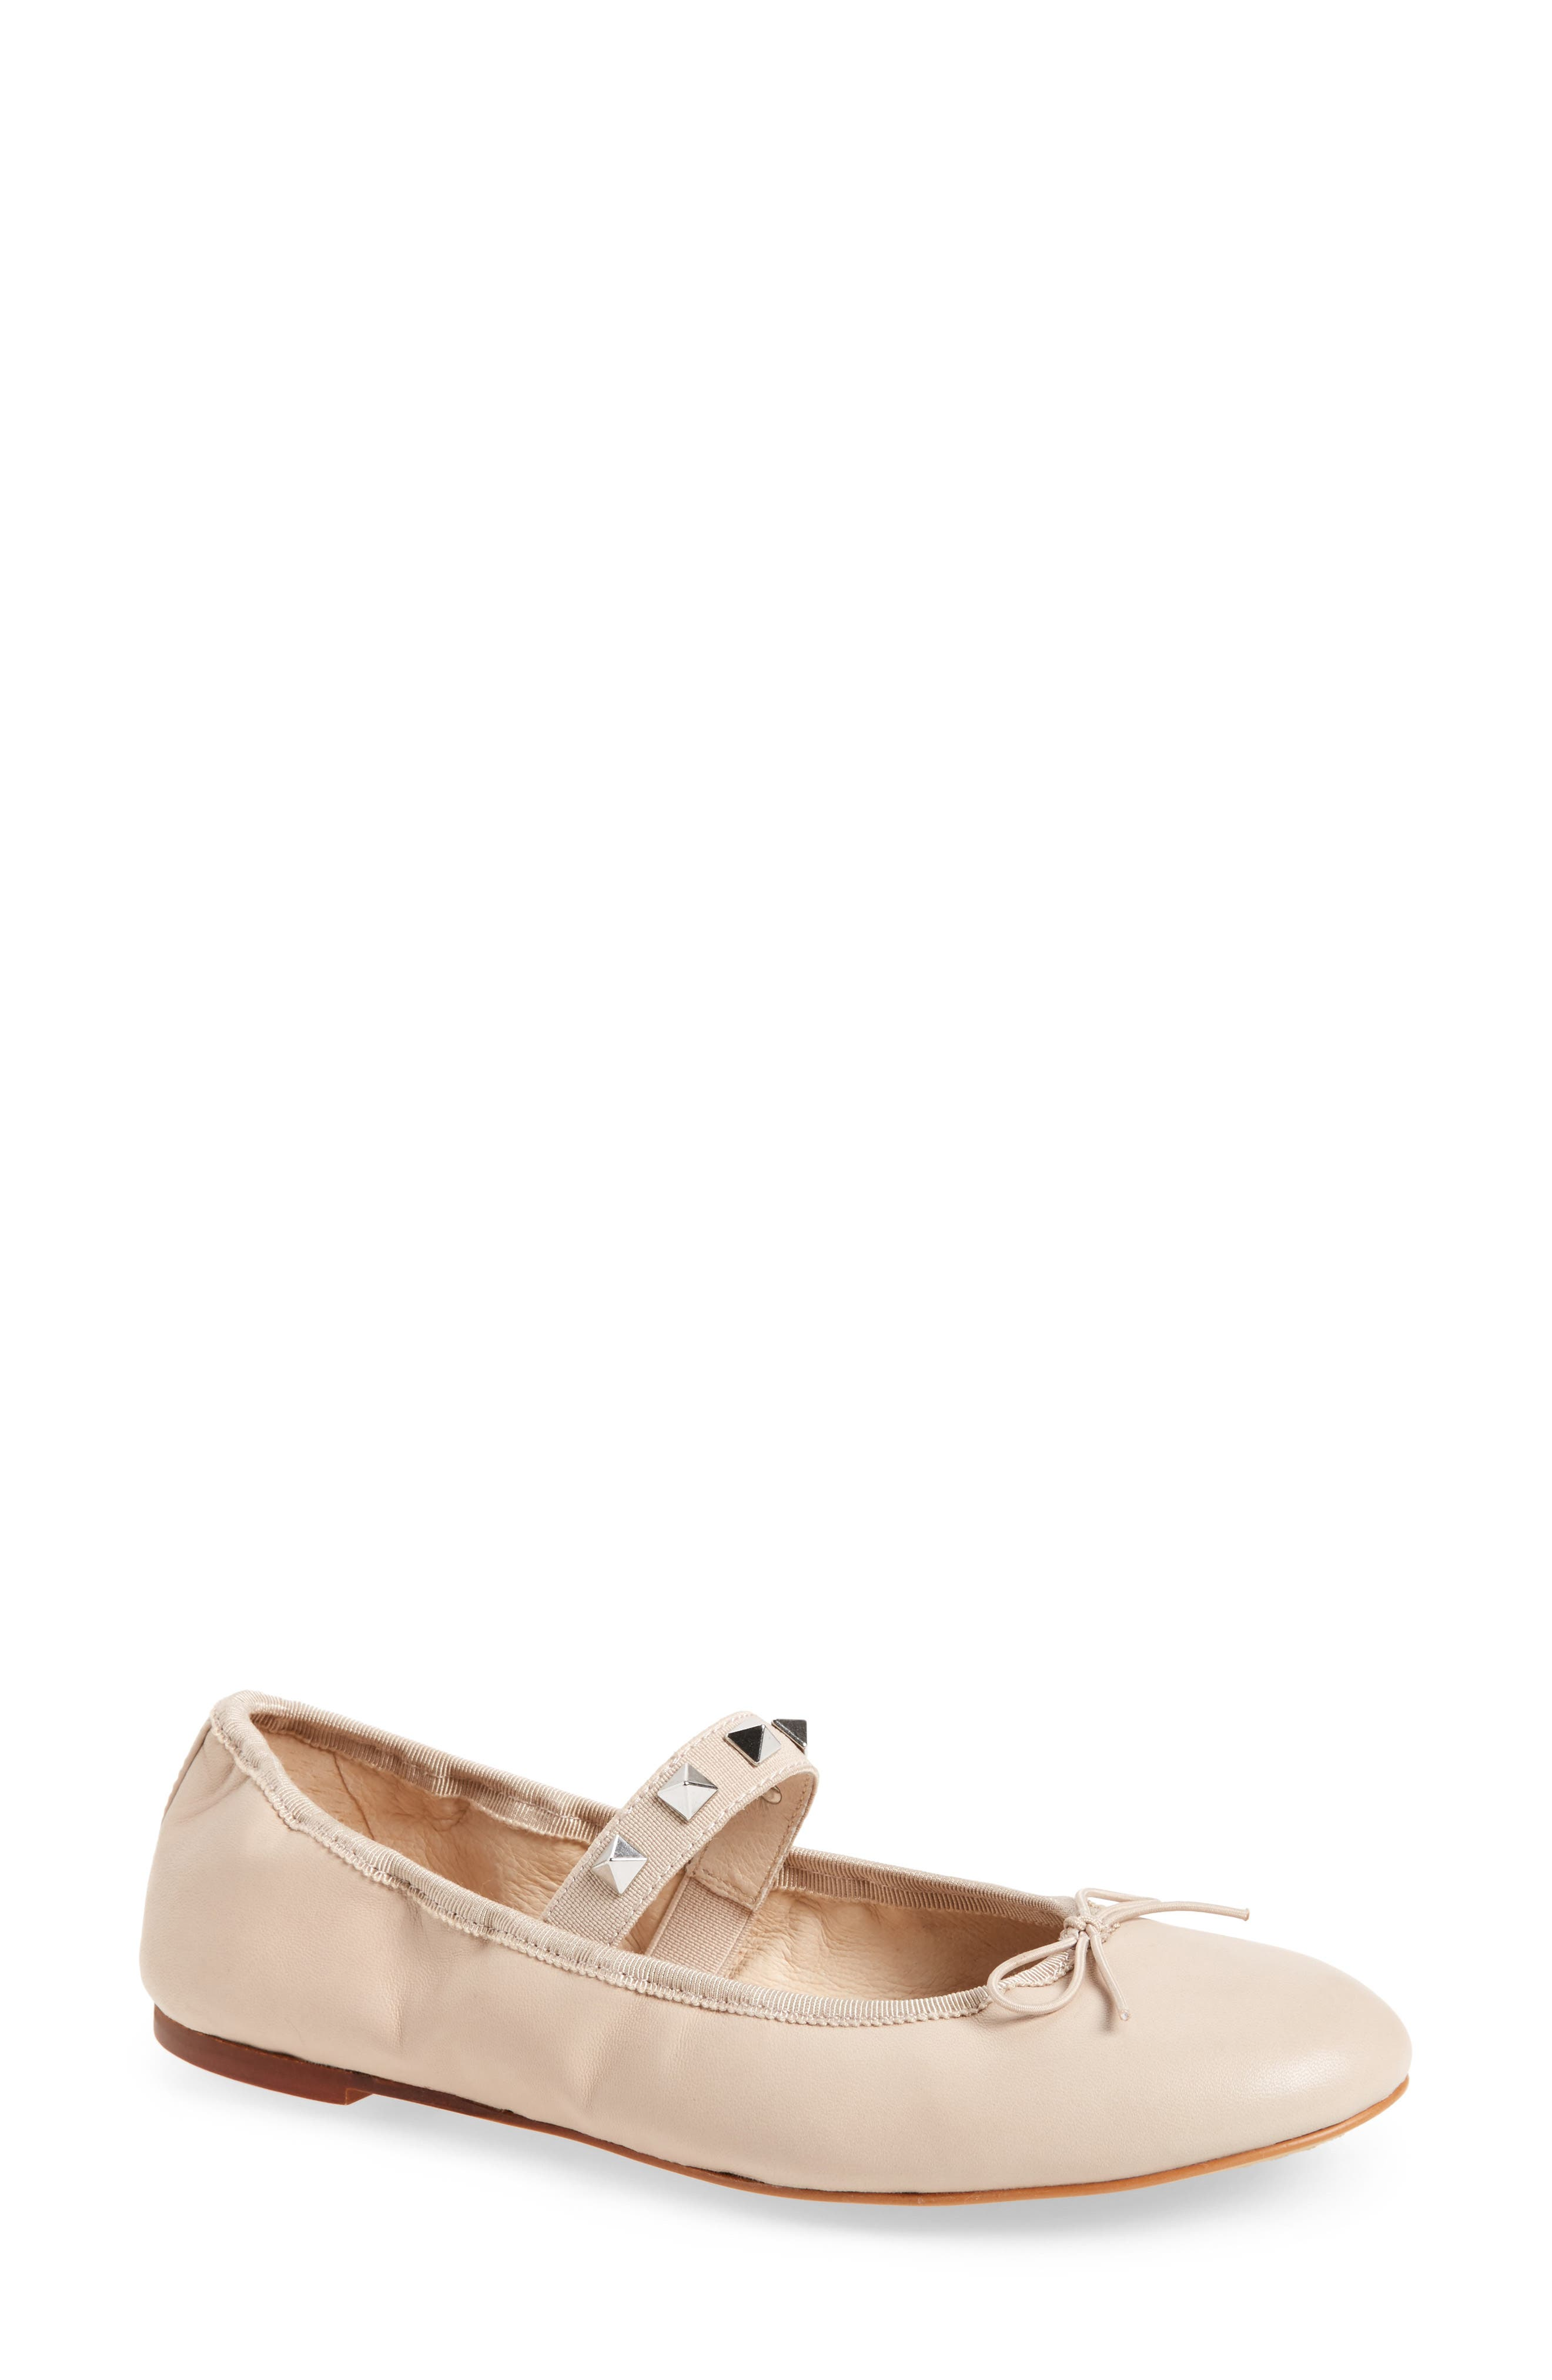 Vince Camuto Prilla Studded Ballet Flat (Women)